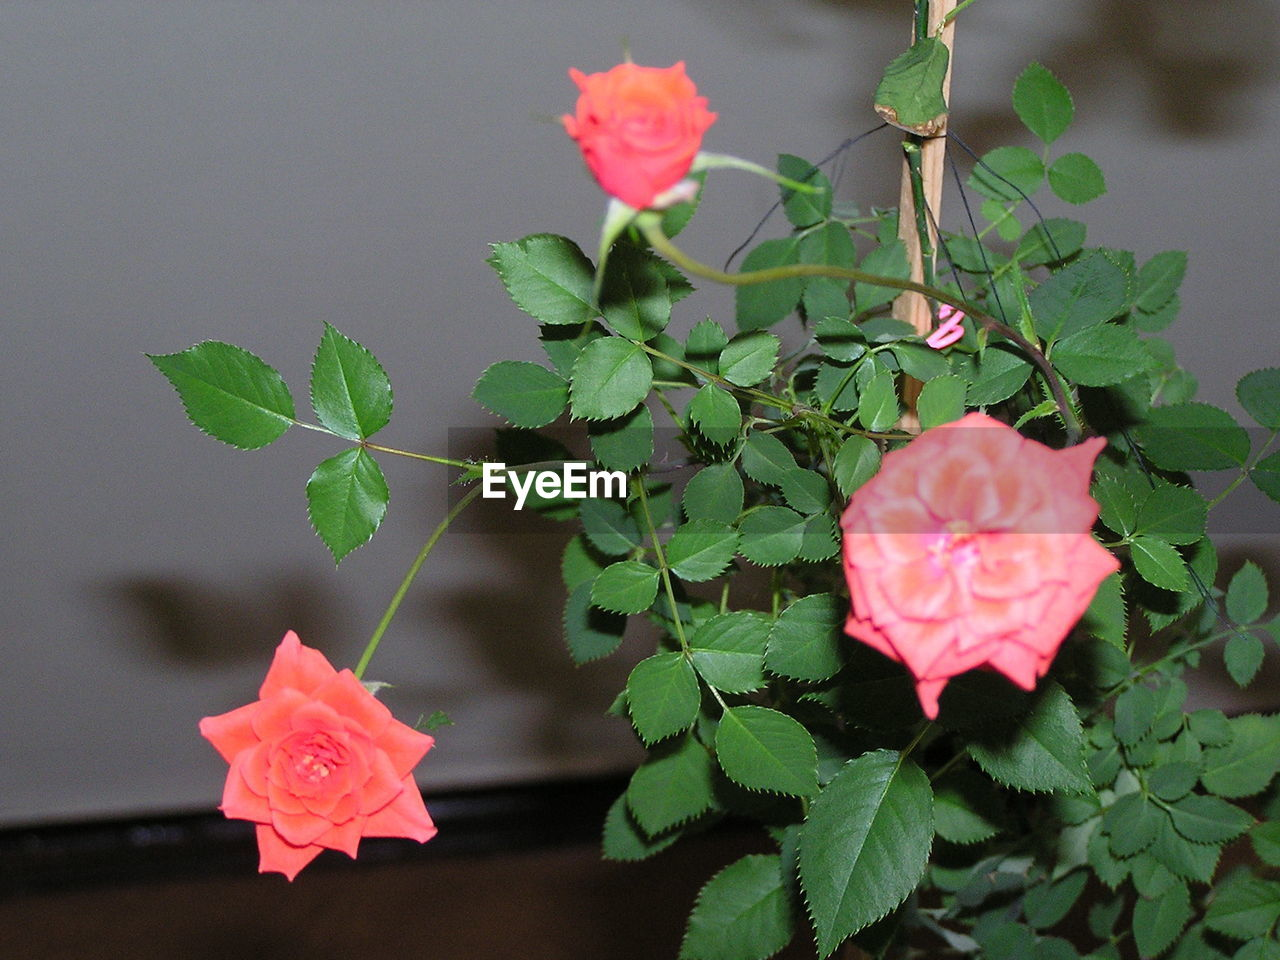 plant, leaf, plant part, beauty in nature, growth, freshness, fragility, flower, vulnerability, petal, flowering plant, nature, pink color, close-up, flower head, inflorescence, no people, green color, rose, day, outdoors